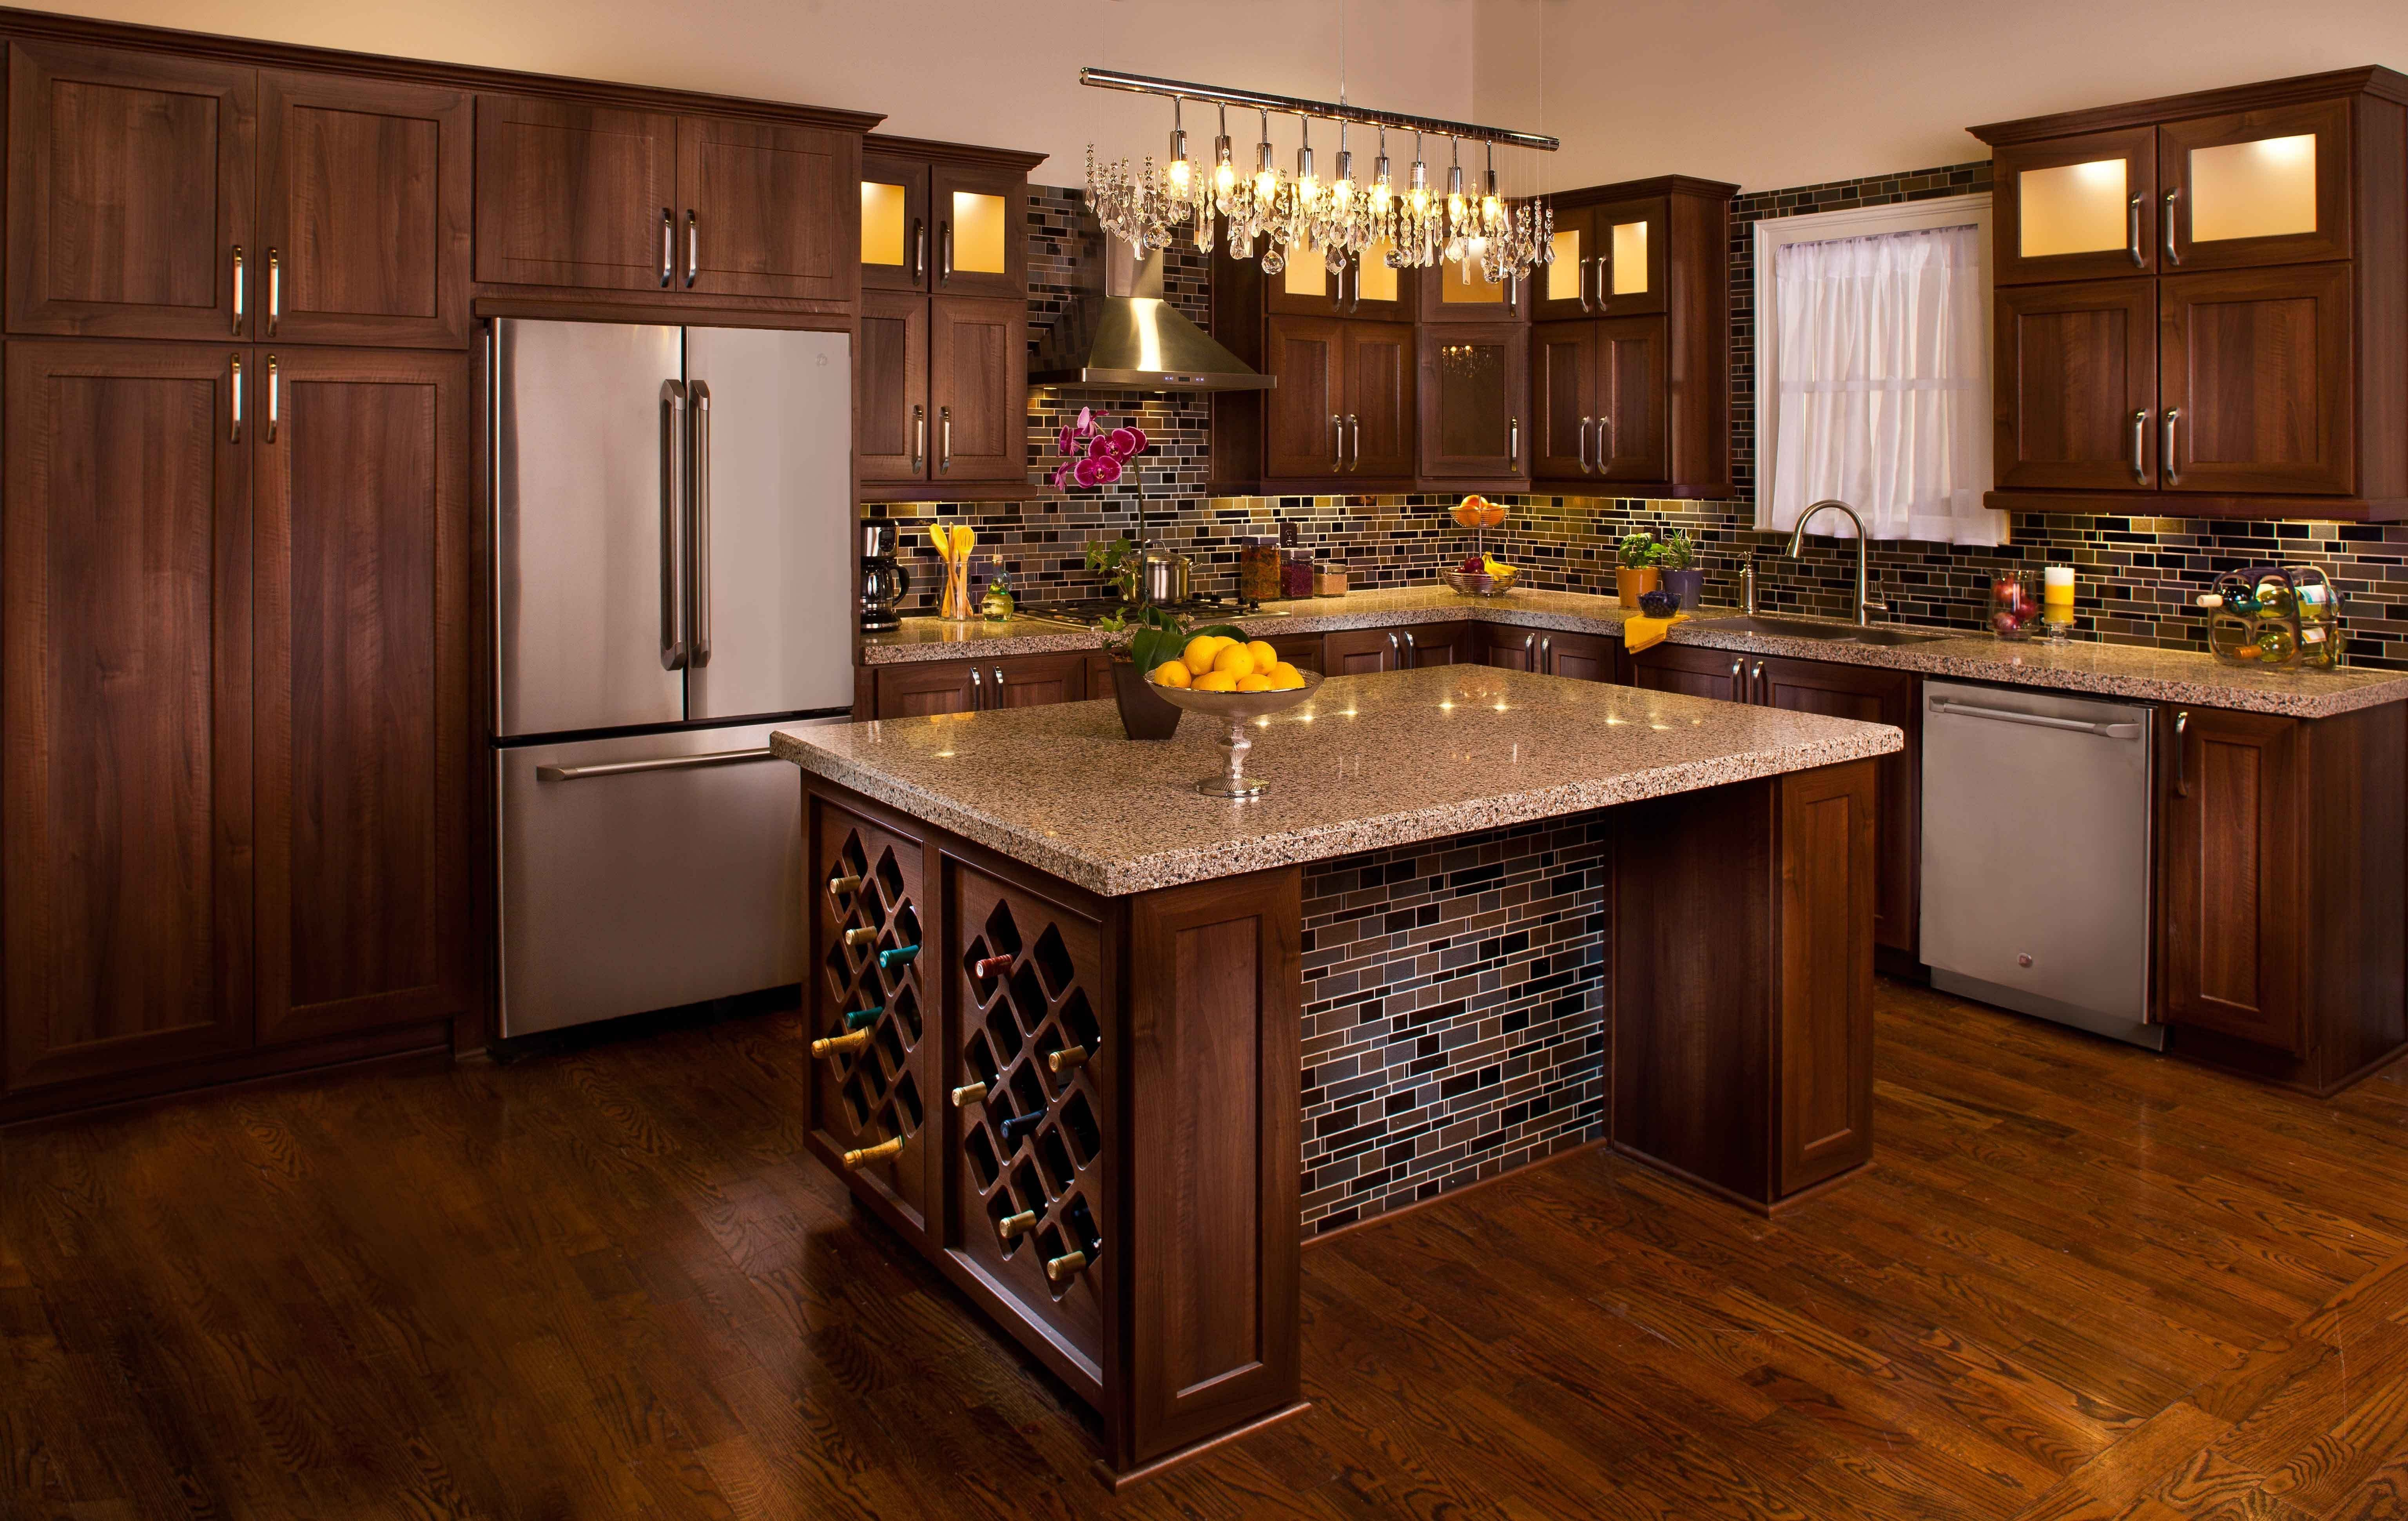 Granite Transformations Was Very Pleasant To Deal With And